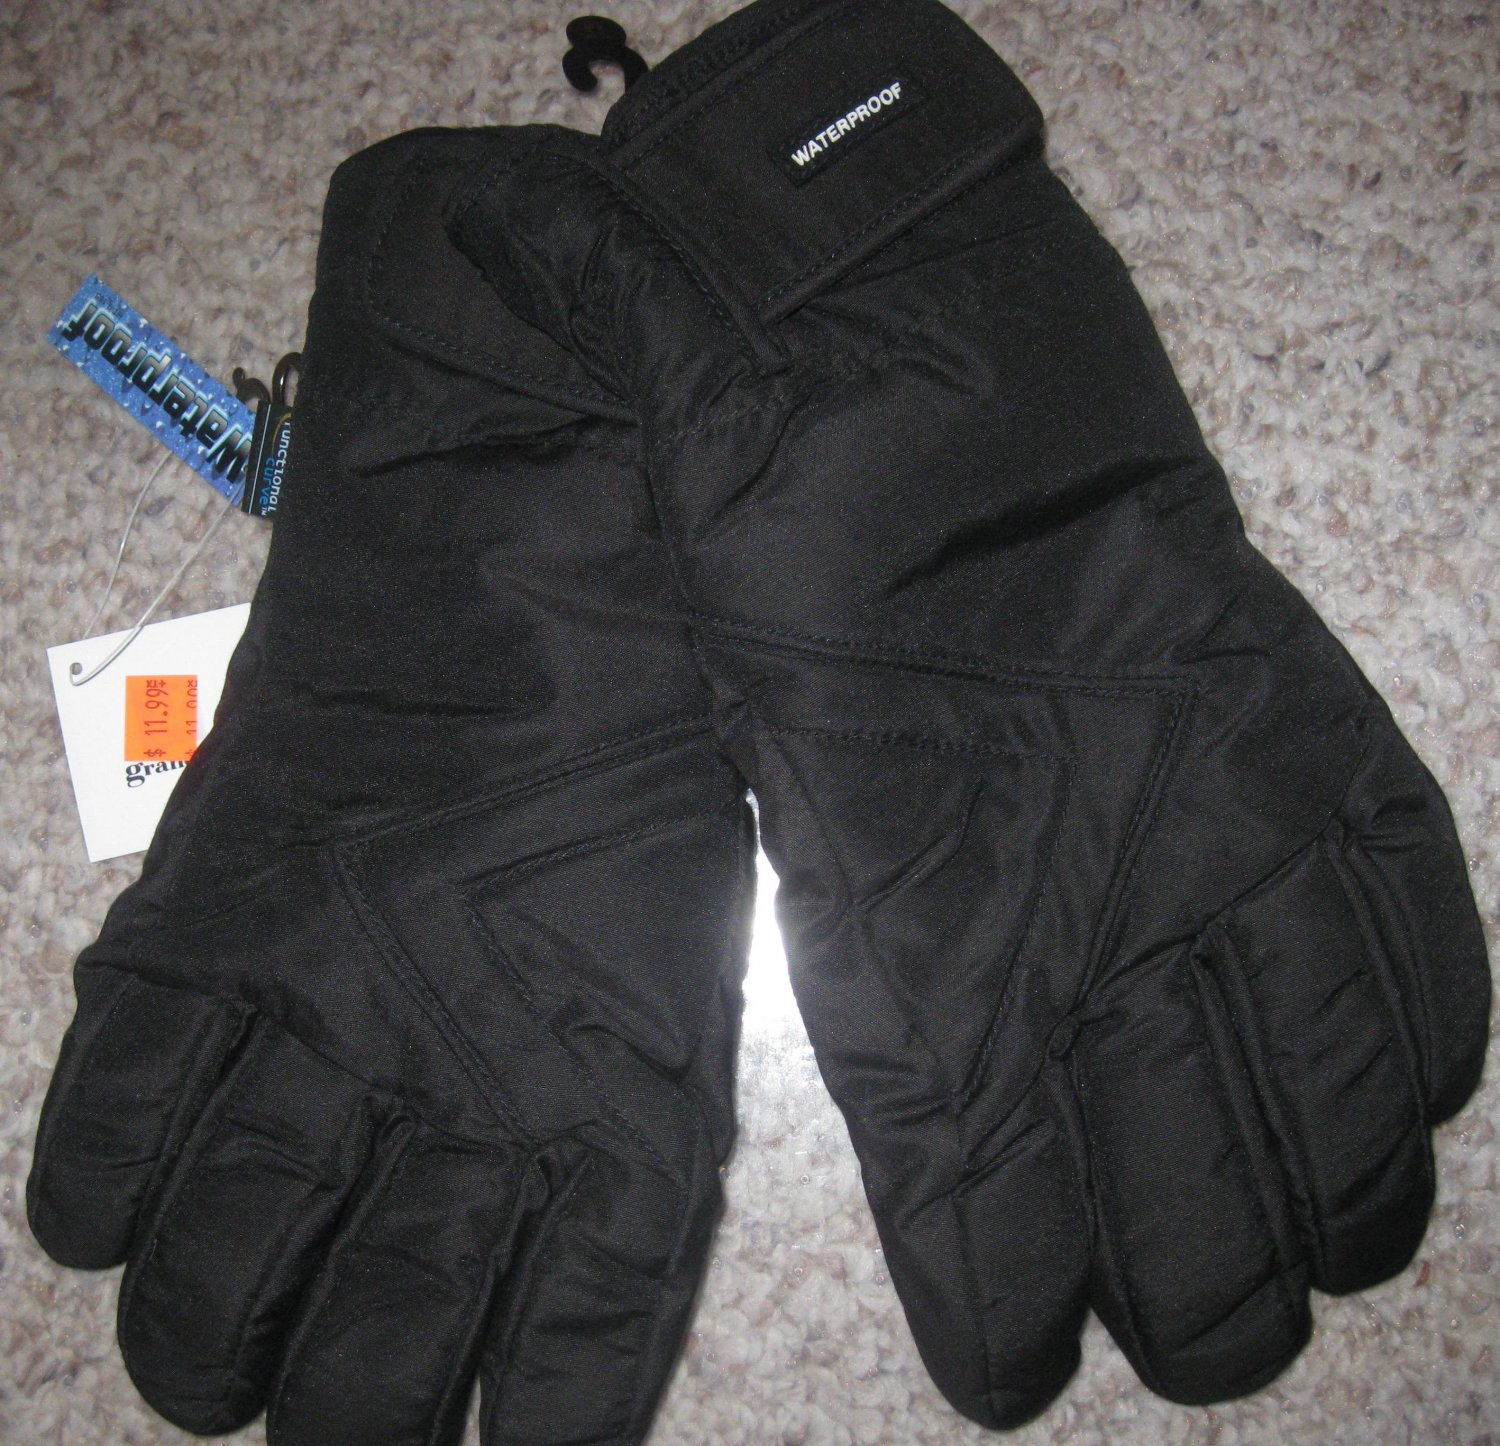 Buy shop winter recreation sporting goods - Grando Waterproof Winter Sports Glove XL